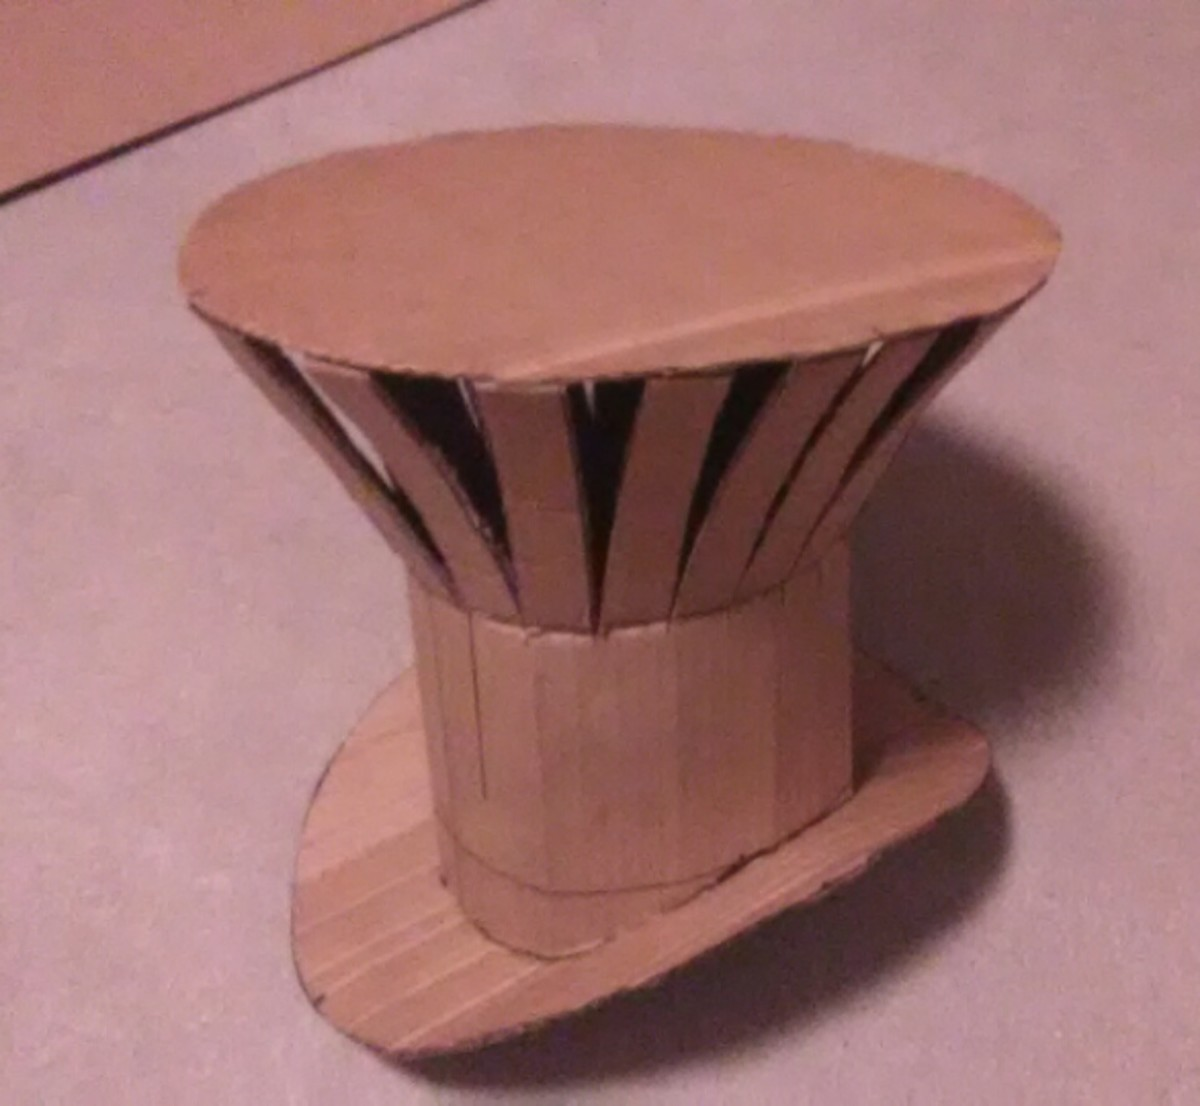 The final cardboard creation is now ready to cover with fabric.